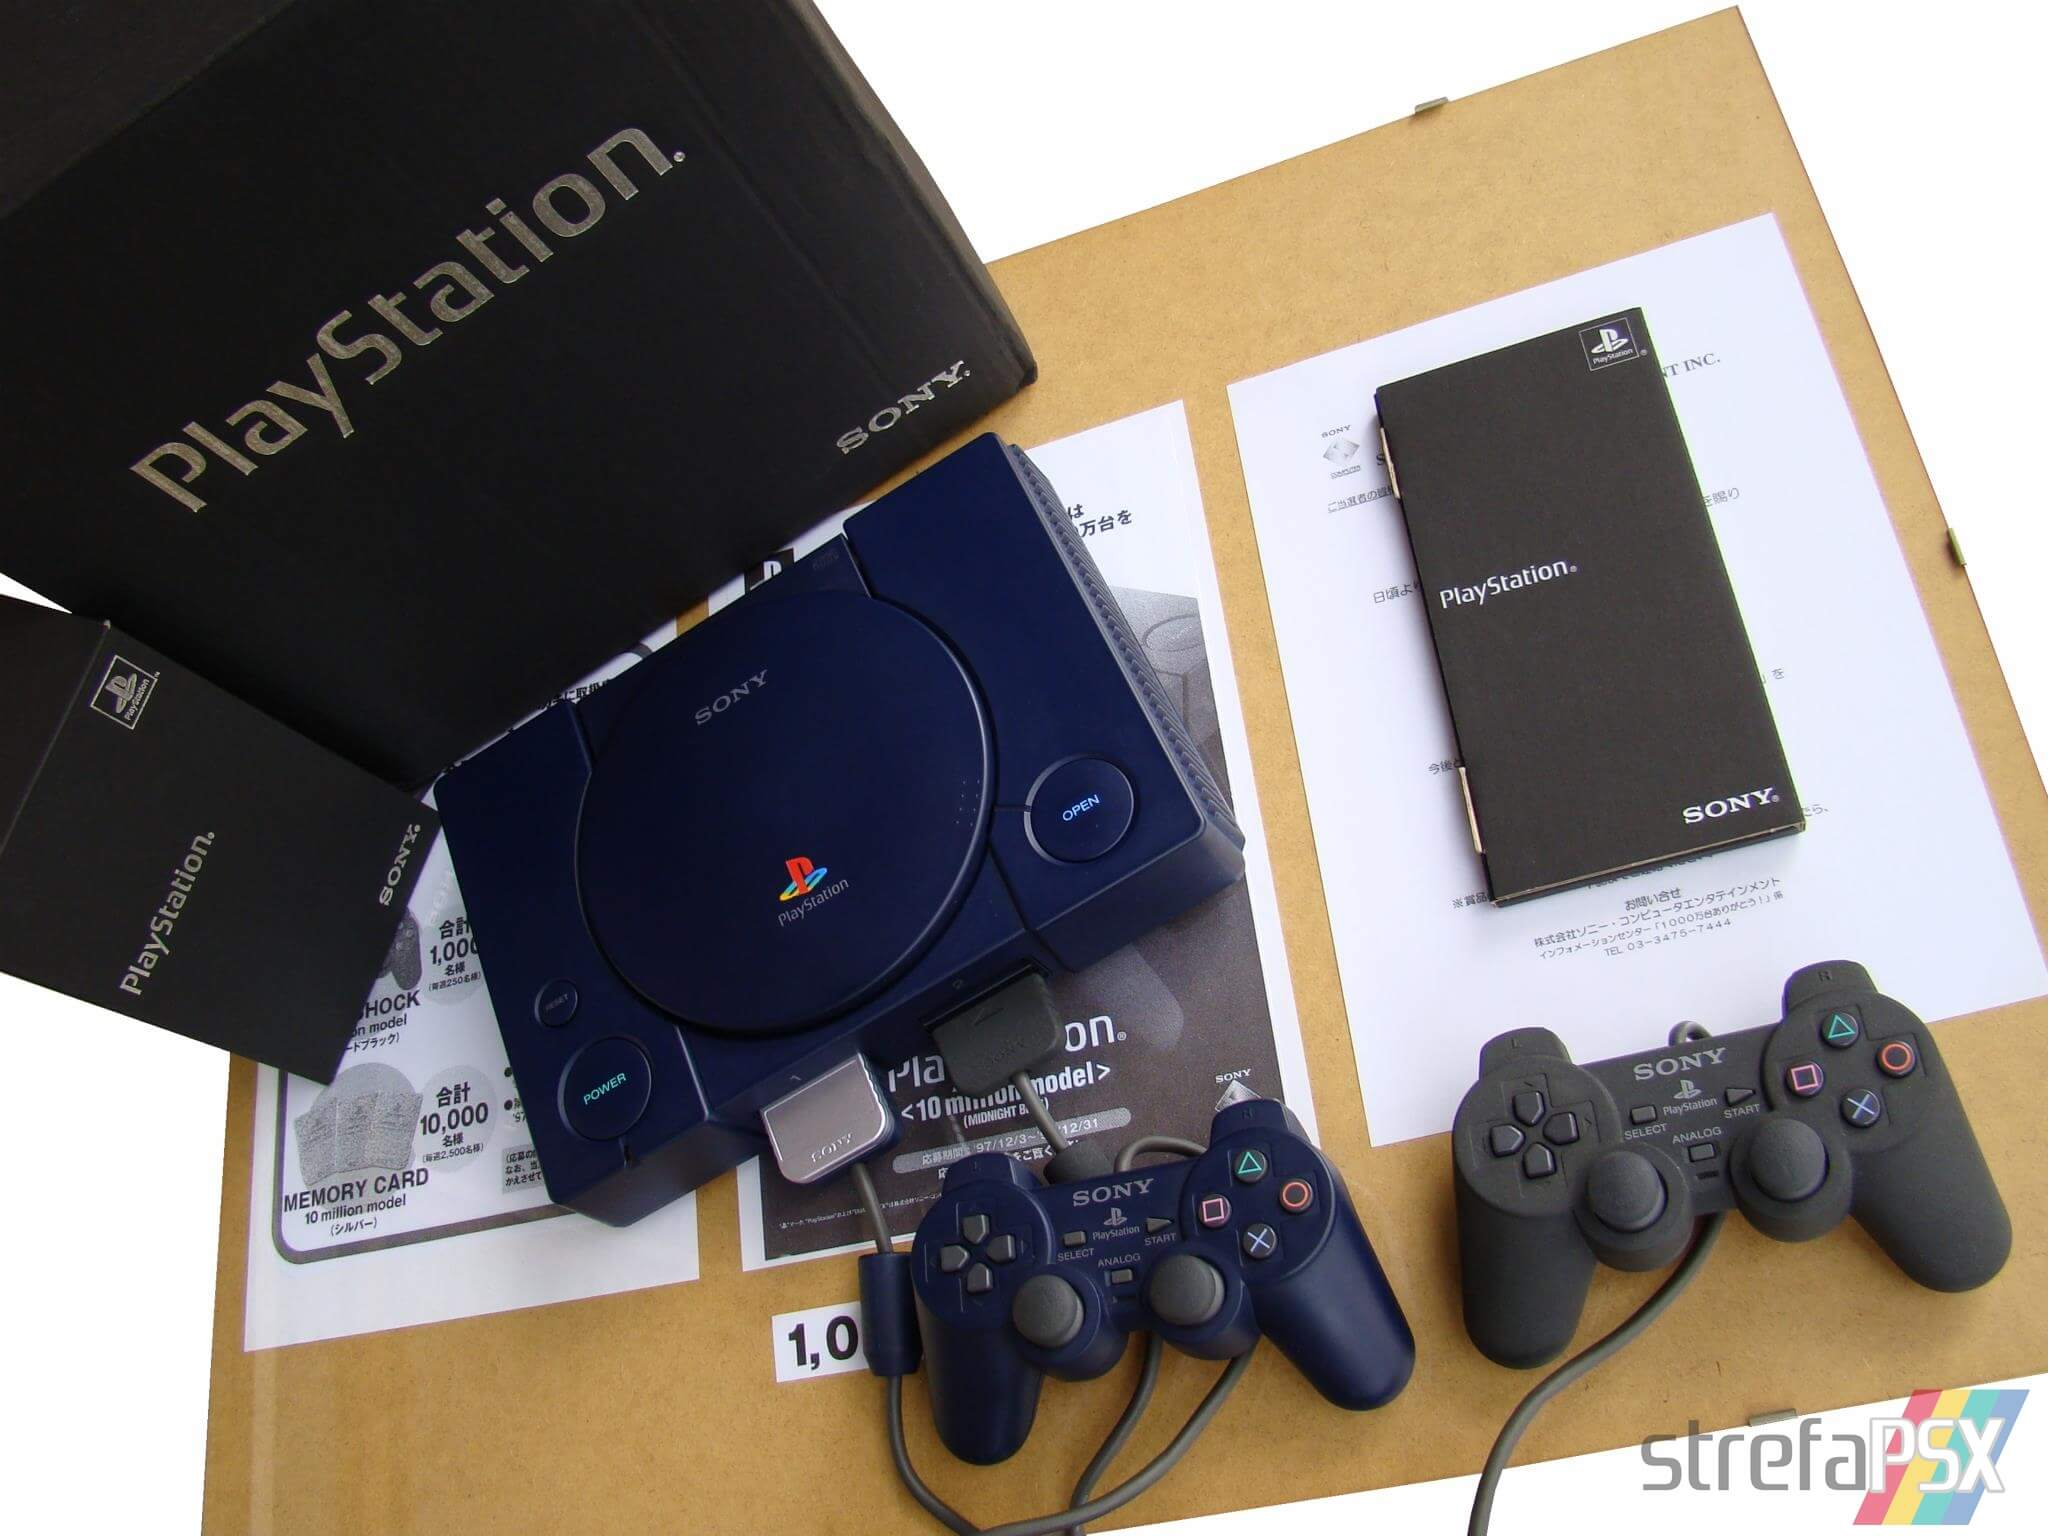 playstation 10 million model scph 700004 - [SCPH-700x] PlayStation 10 Million Model